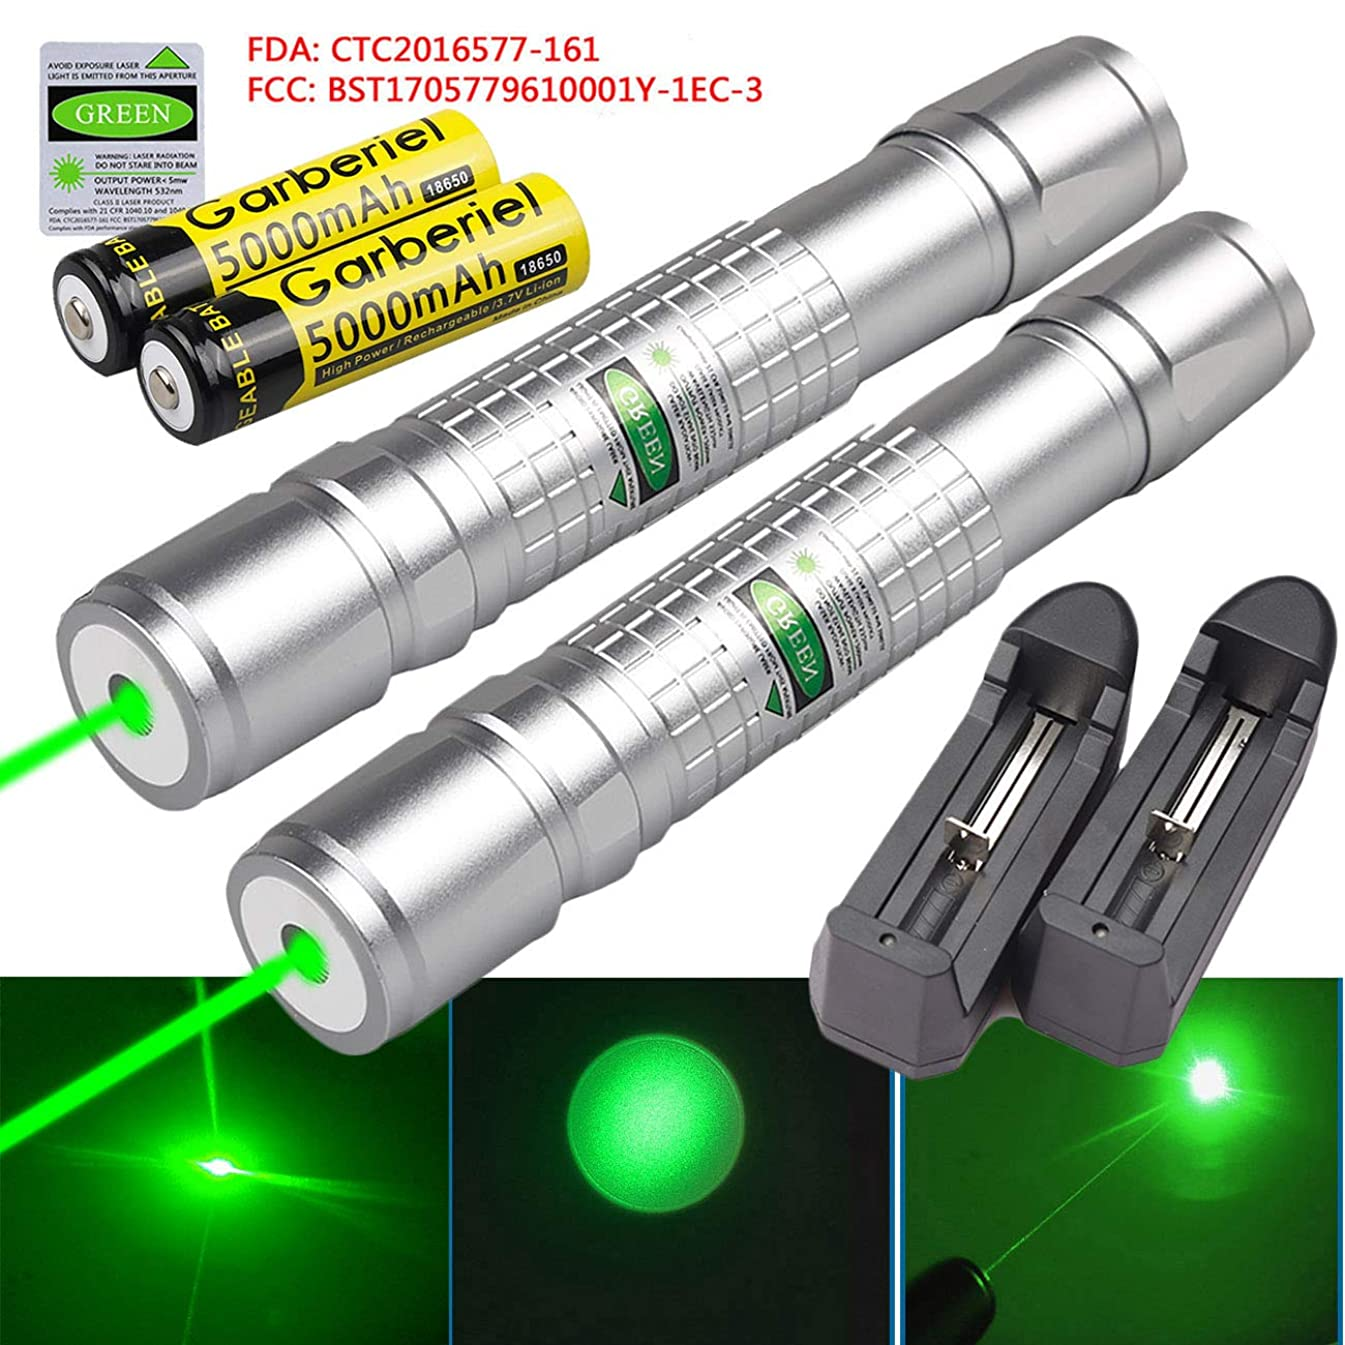 Tactical Hunting Rifle Scope Sight Laser Pen, Demo Remote Pen Pointer Projector Travel Outdoor Flashlight, LED Interactive Baton Funny Laser Toy